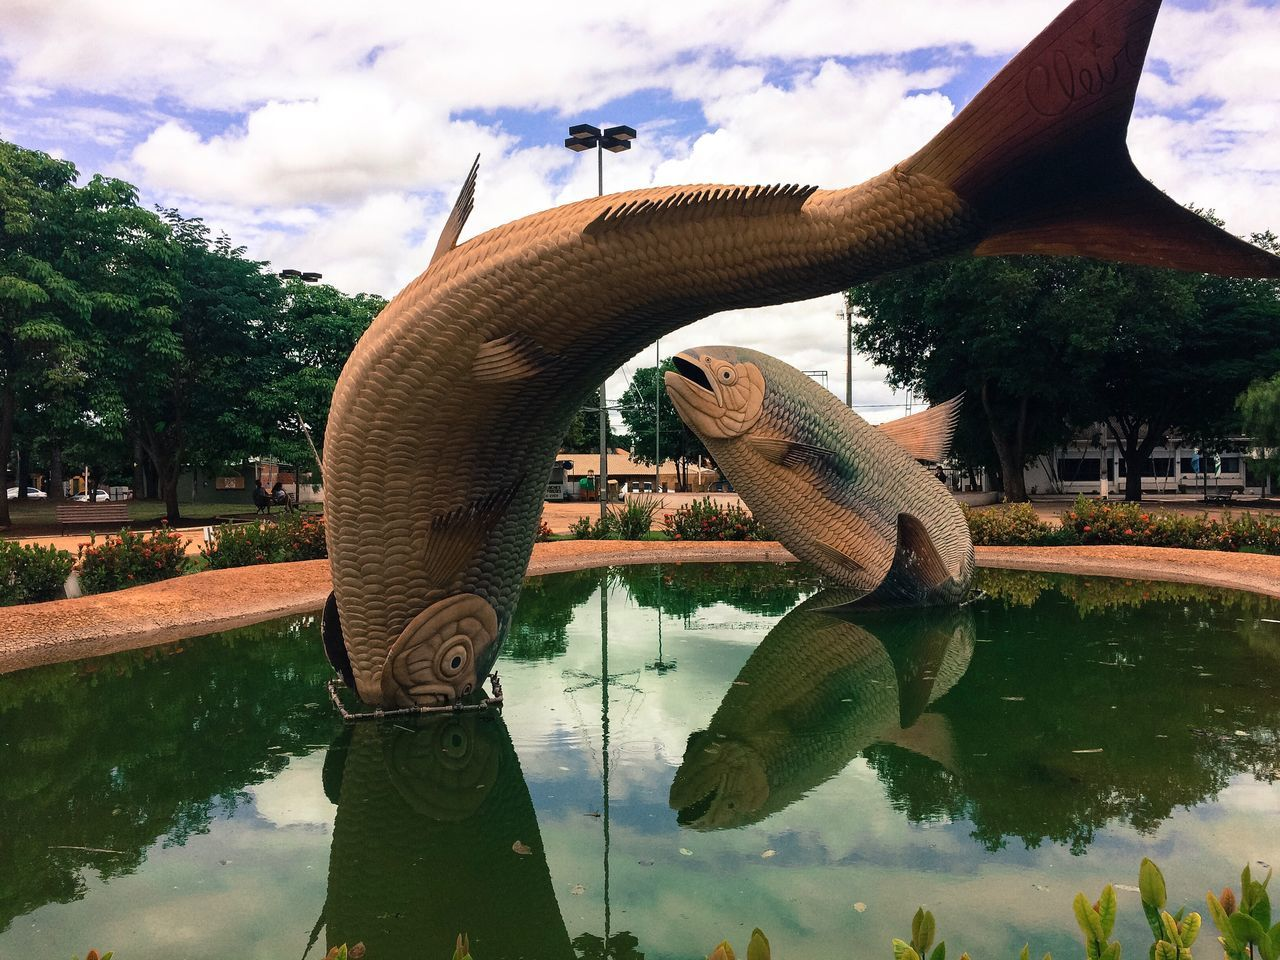 Bonito-ms Water Sky Outdoors Animal Themes Leisure Activity Day Tree Real People Cloud - Sky Vacations Nature Mammal Escultura Esculpture Bonito-MS Brazil Brazil